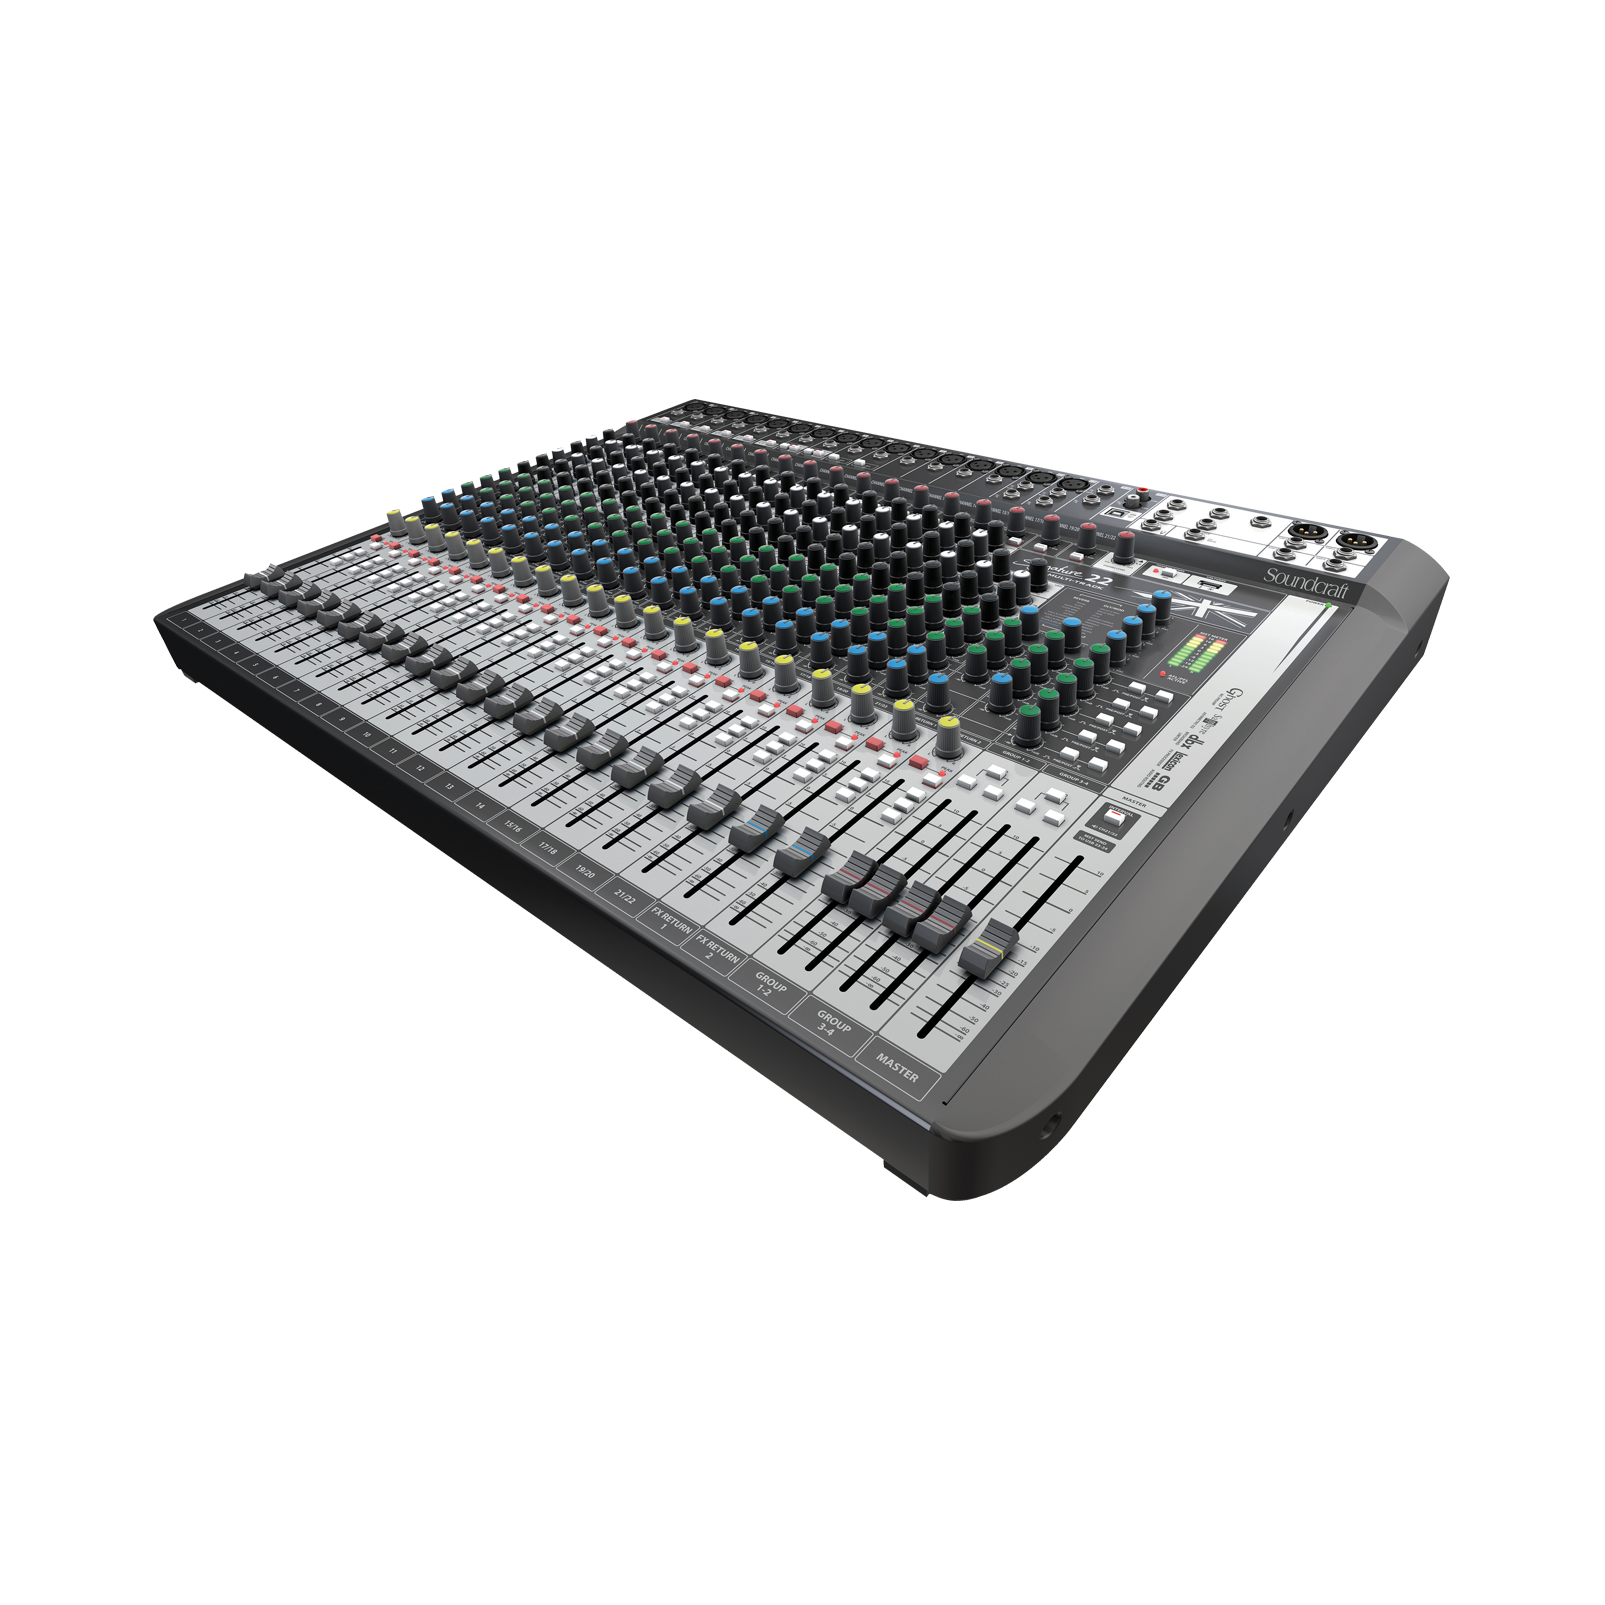 Signature 22 MTK - Black - 22-input analogue mixer with onboard effects - Detailshot 2